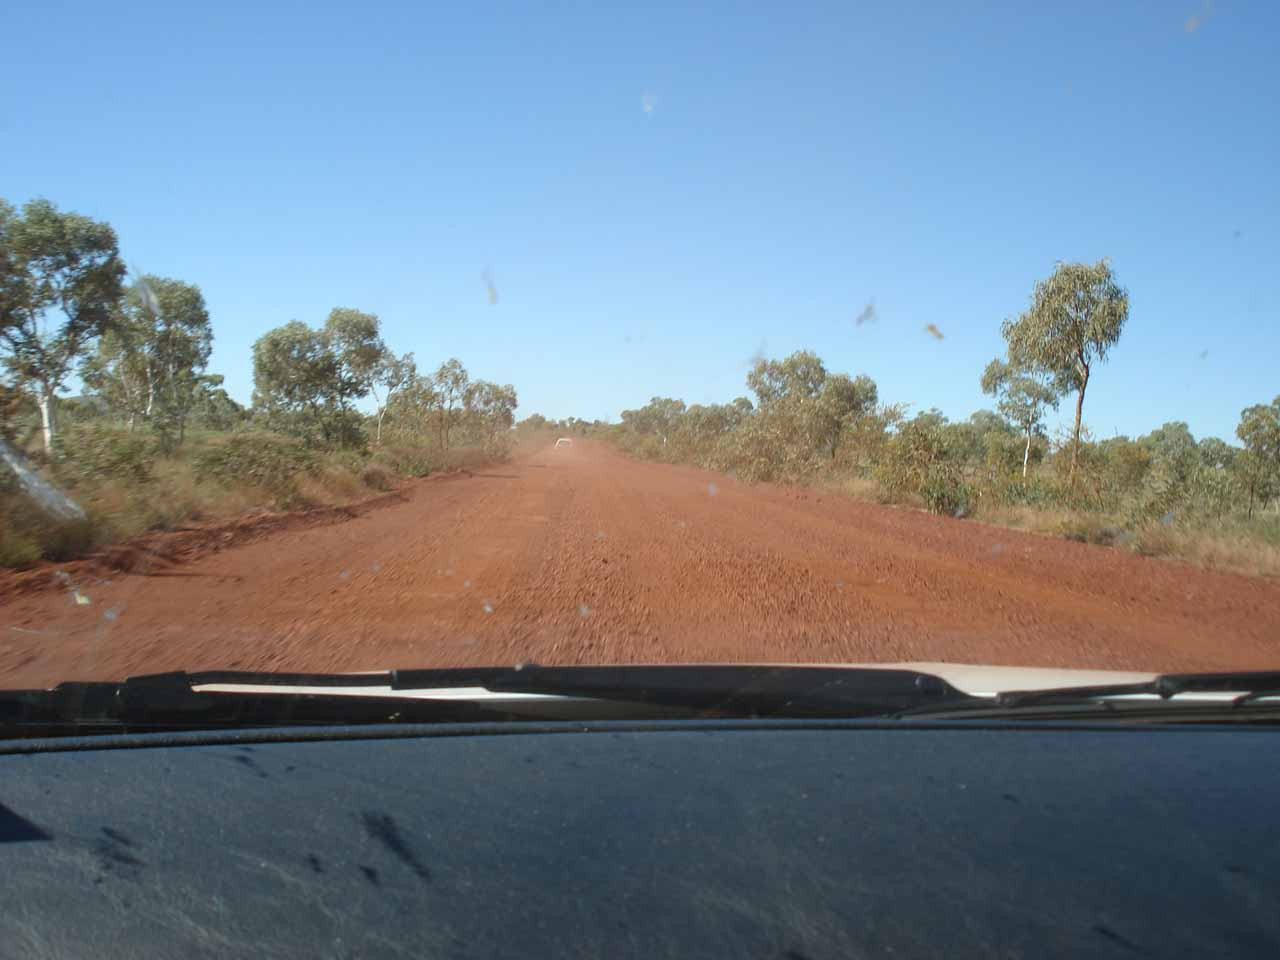 West of the Karijini NP Visitor Center, the Banjima Drive became unsealed